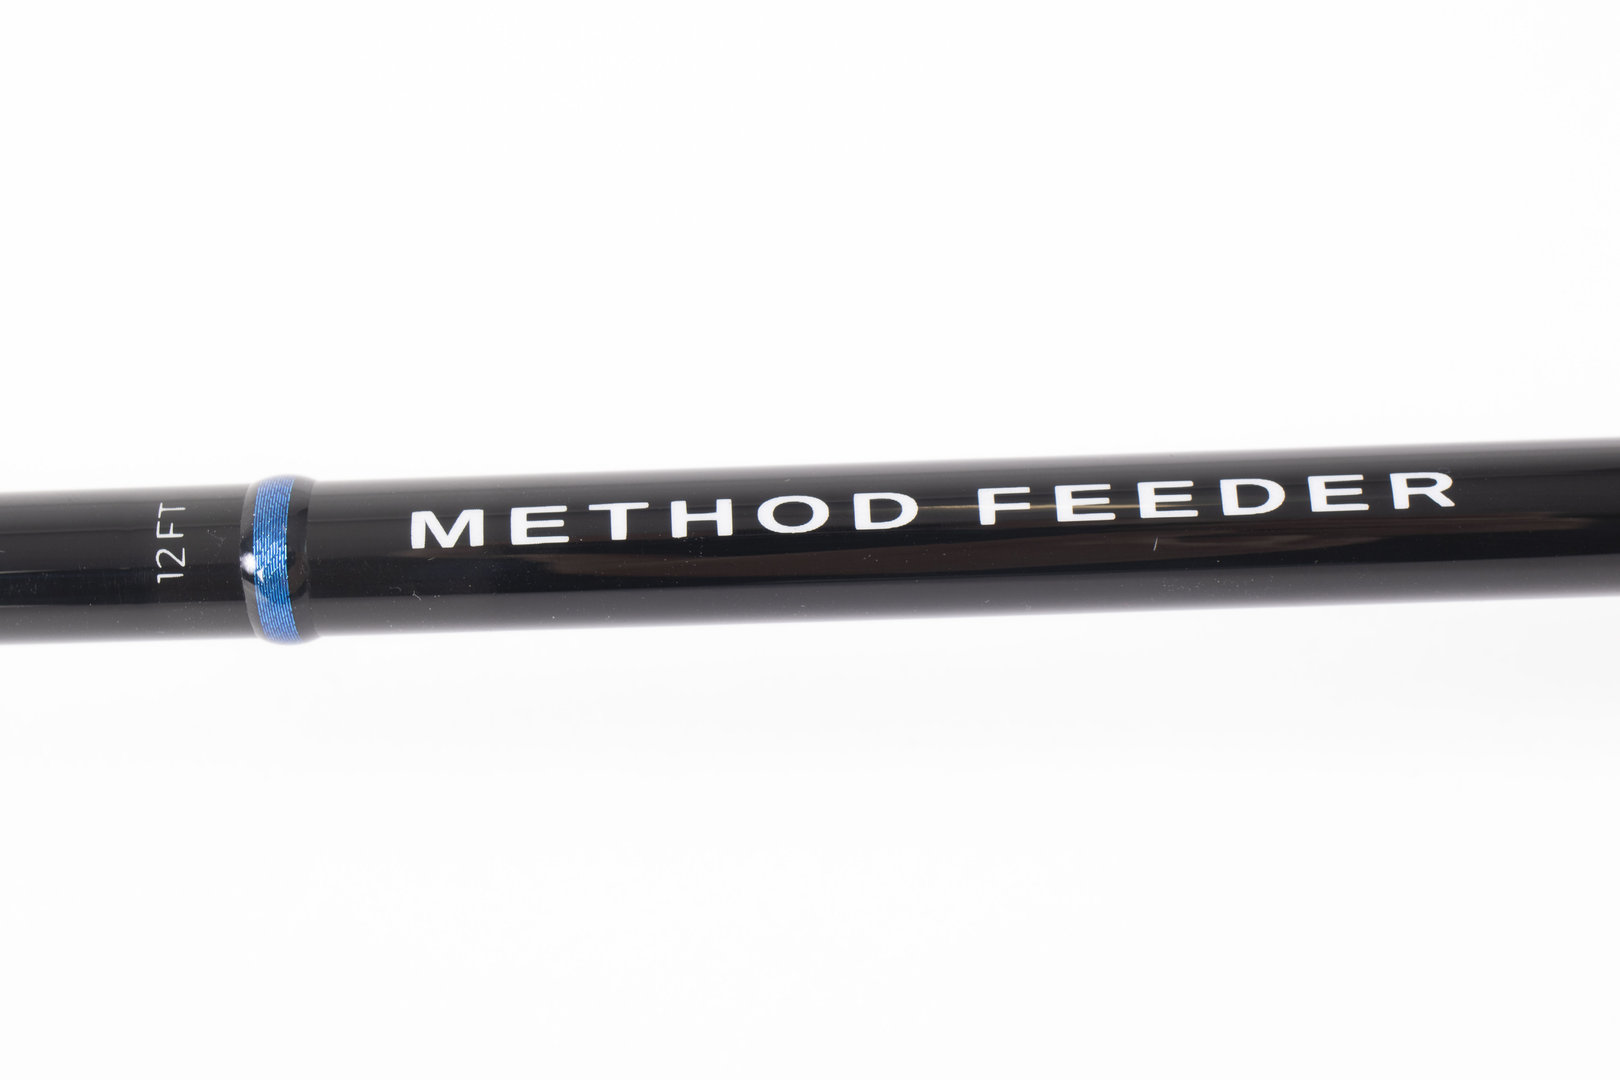 Preston Monster X Method Feeder - 12ft